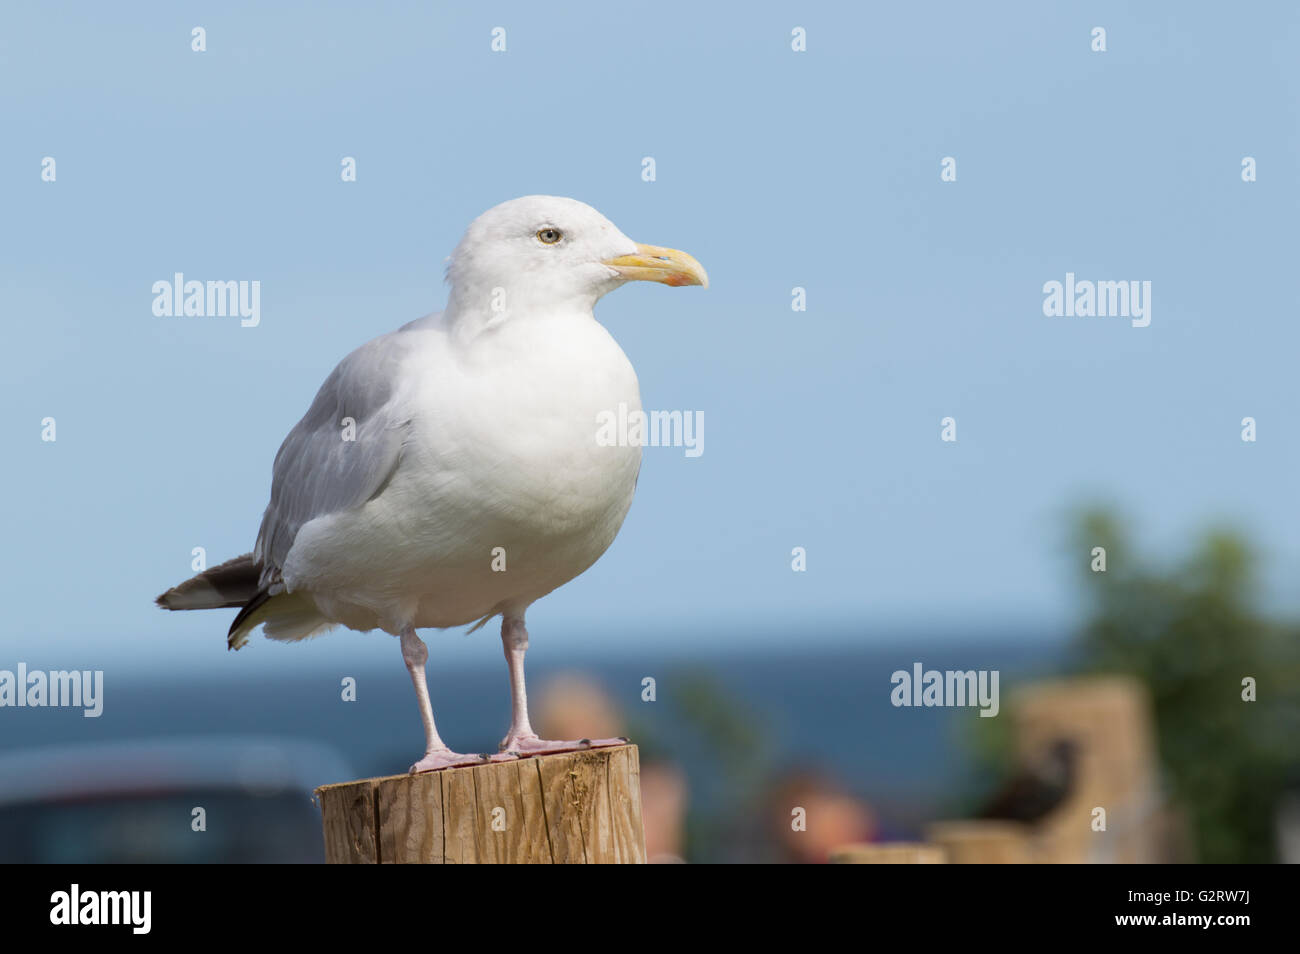 A Herring Gull (Larus argentatus) standing on a wooden fence post. - Stock Image